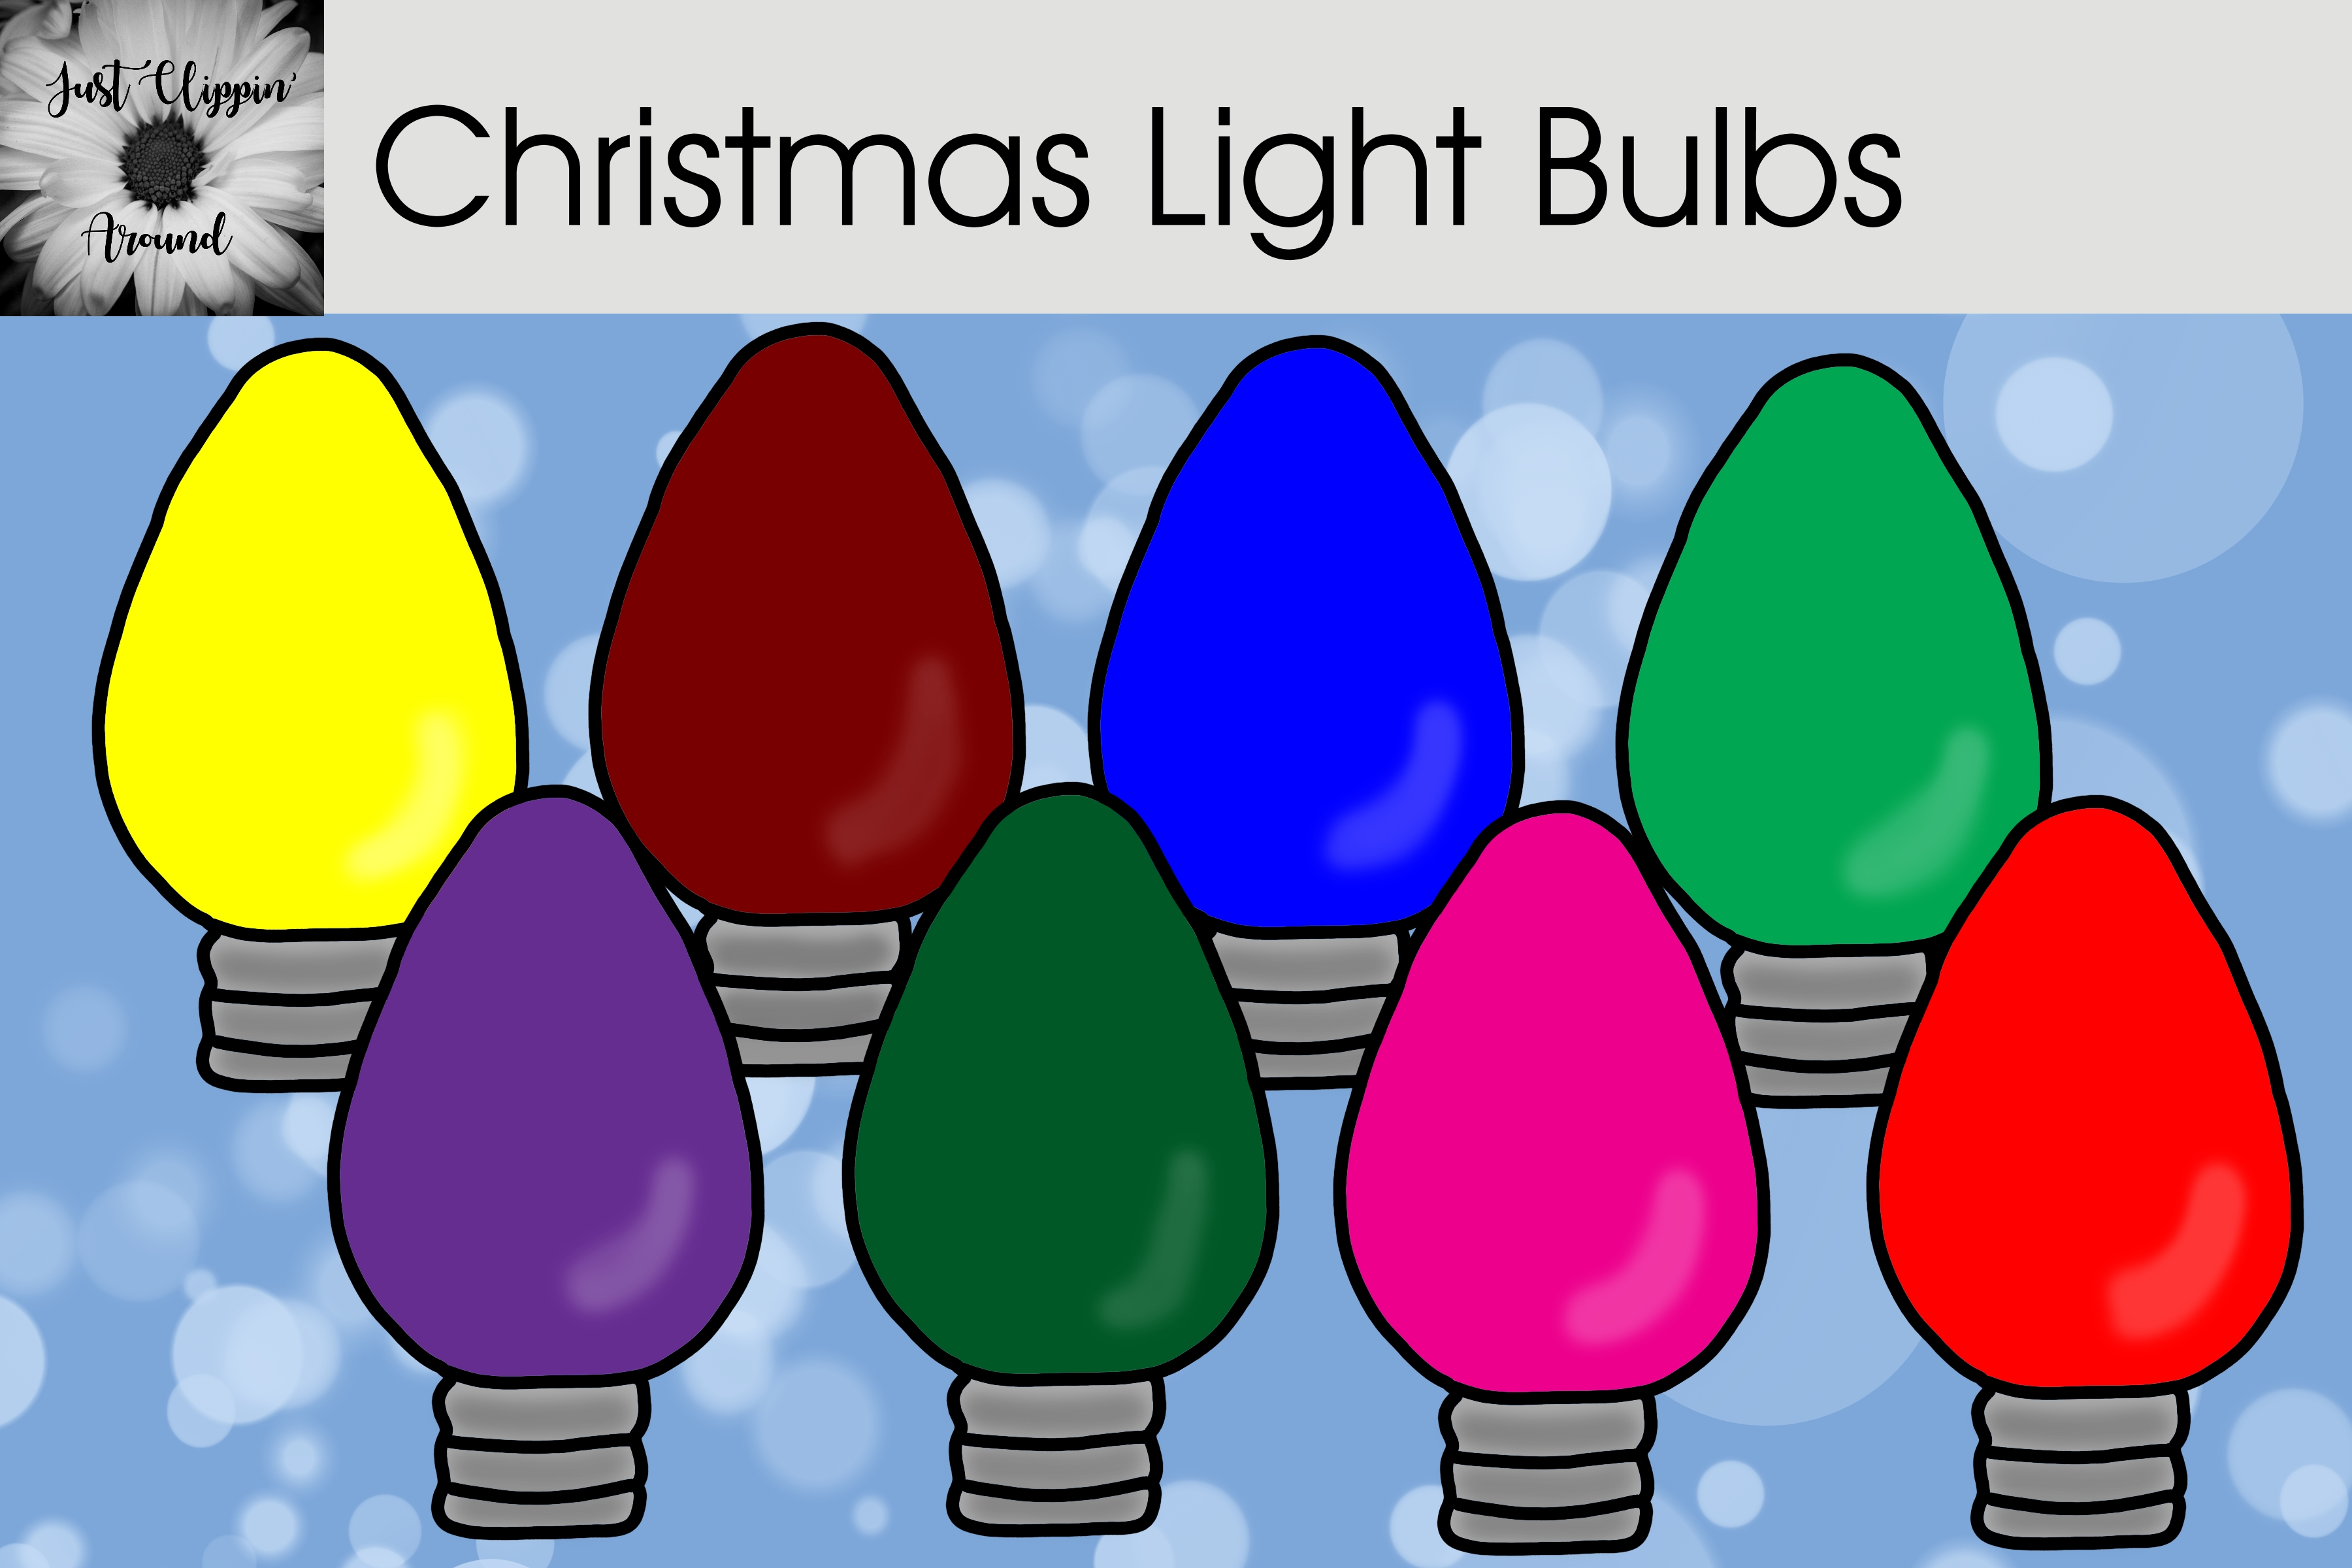 Download Free Christmas Light Bulbs Clip Art Graphic By Justclippinaround for Cricut Explore, Silhouette and other cutting machines.